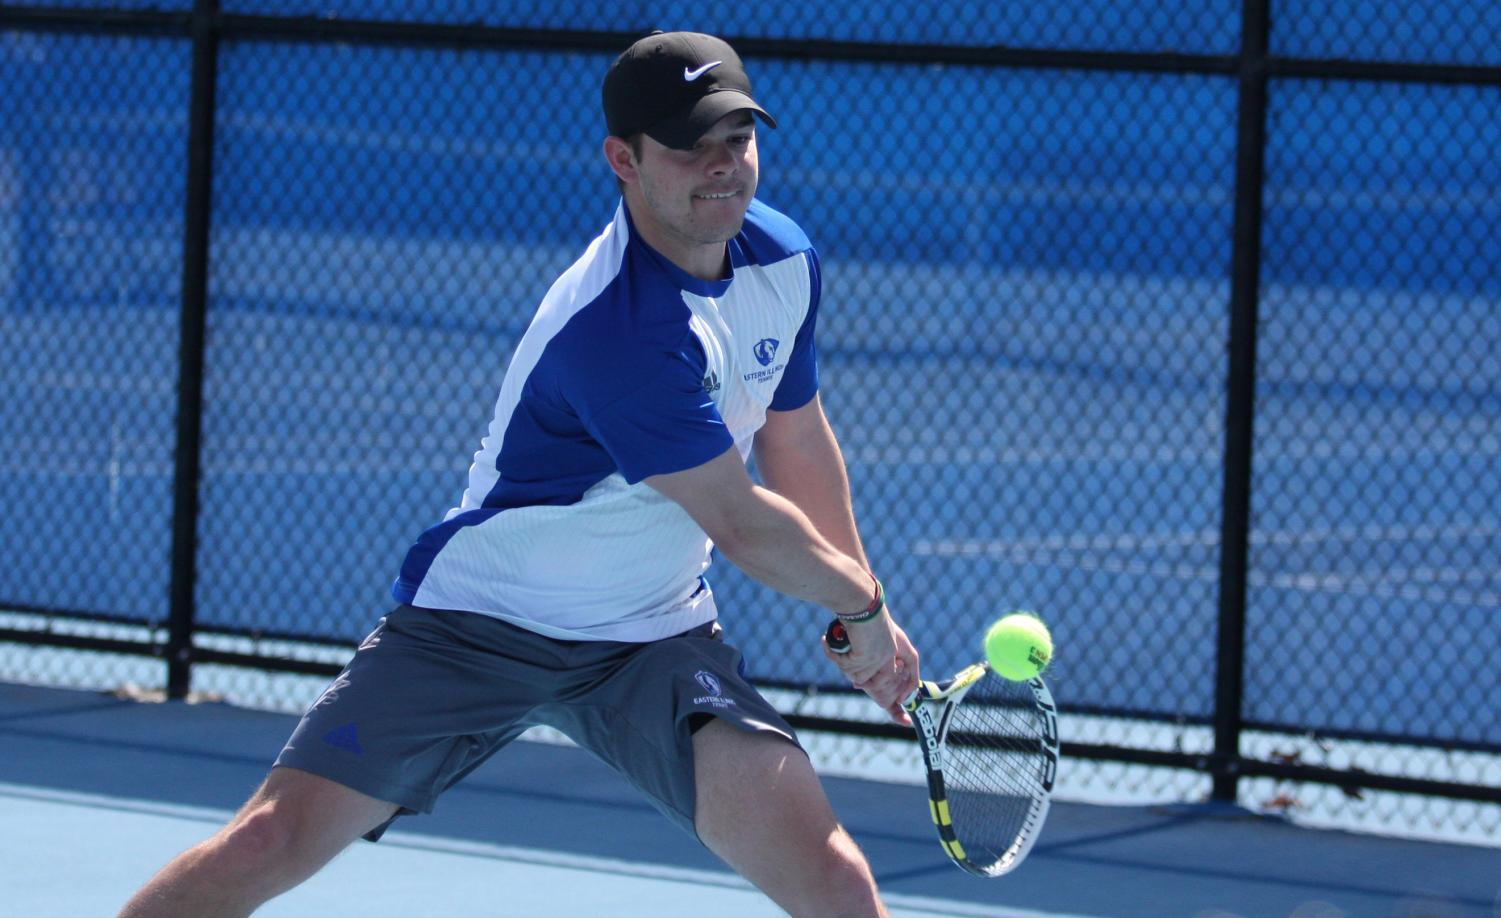 Eastern senior Grant Reiman returns a ball in the Panthers' meet last Friday at the Darling Courts. Reiman and his partner lost in the No. 3 doubles position.